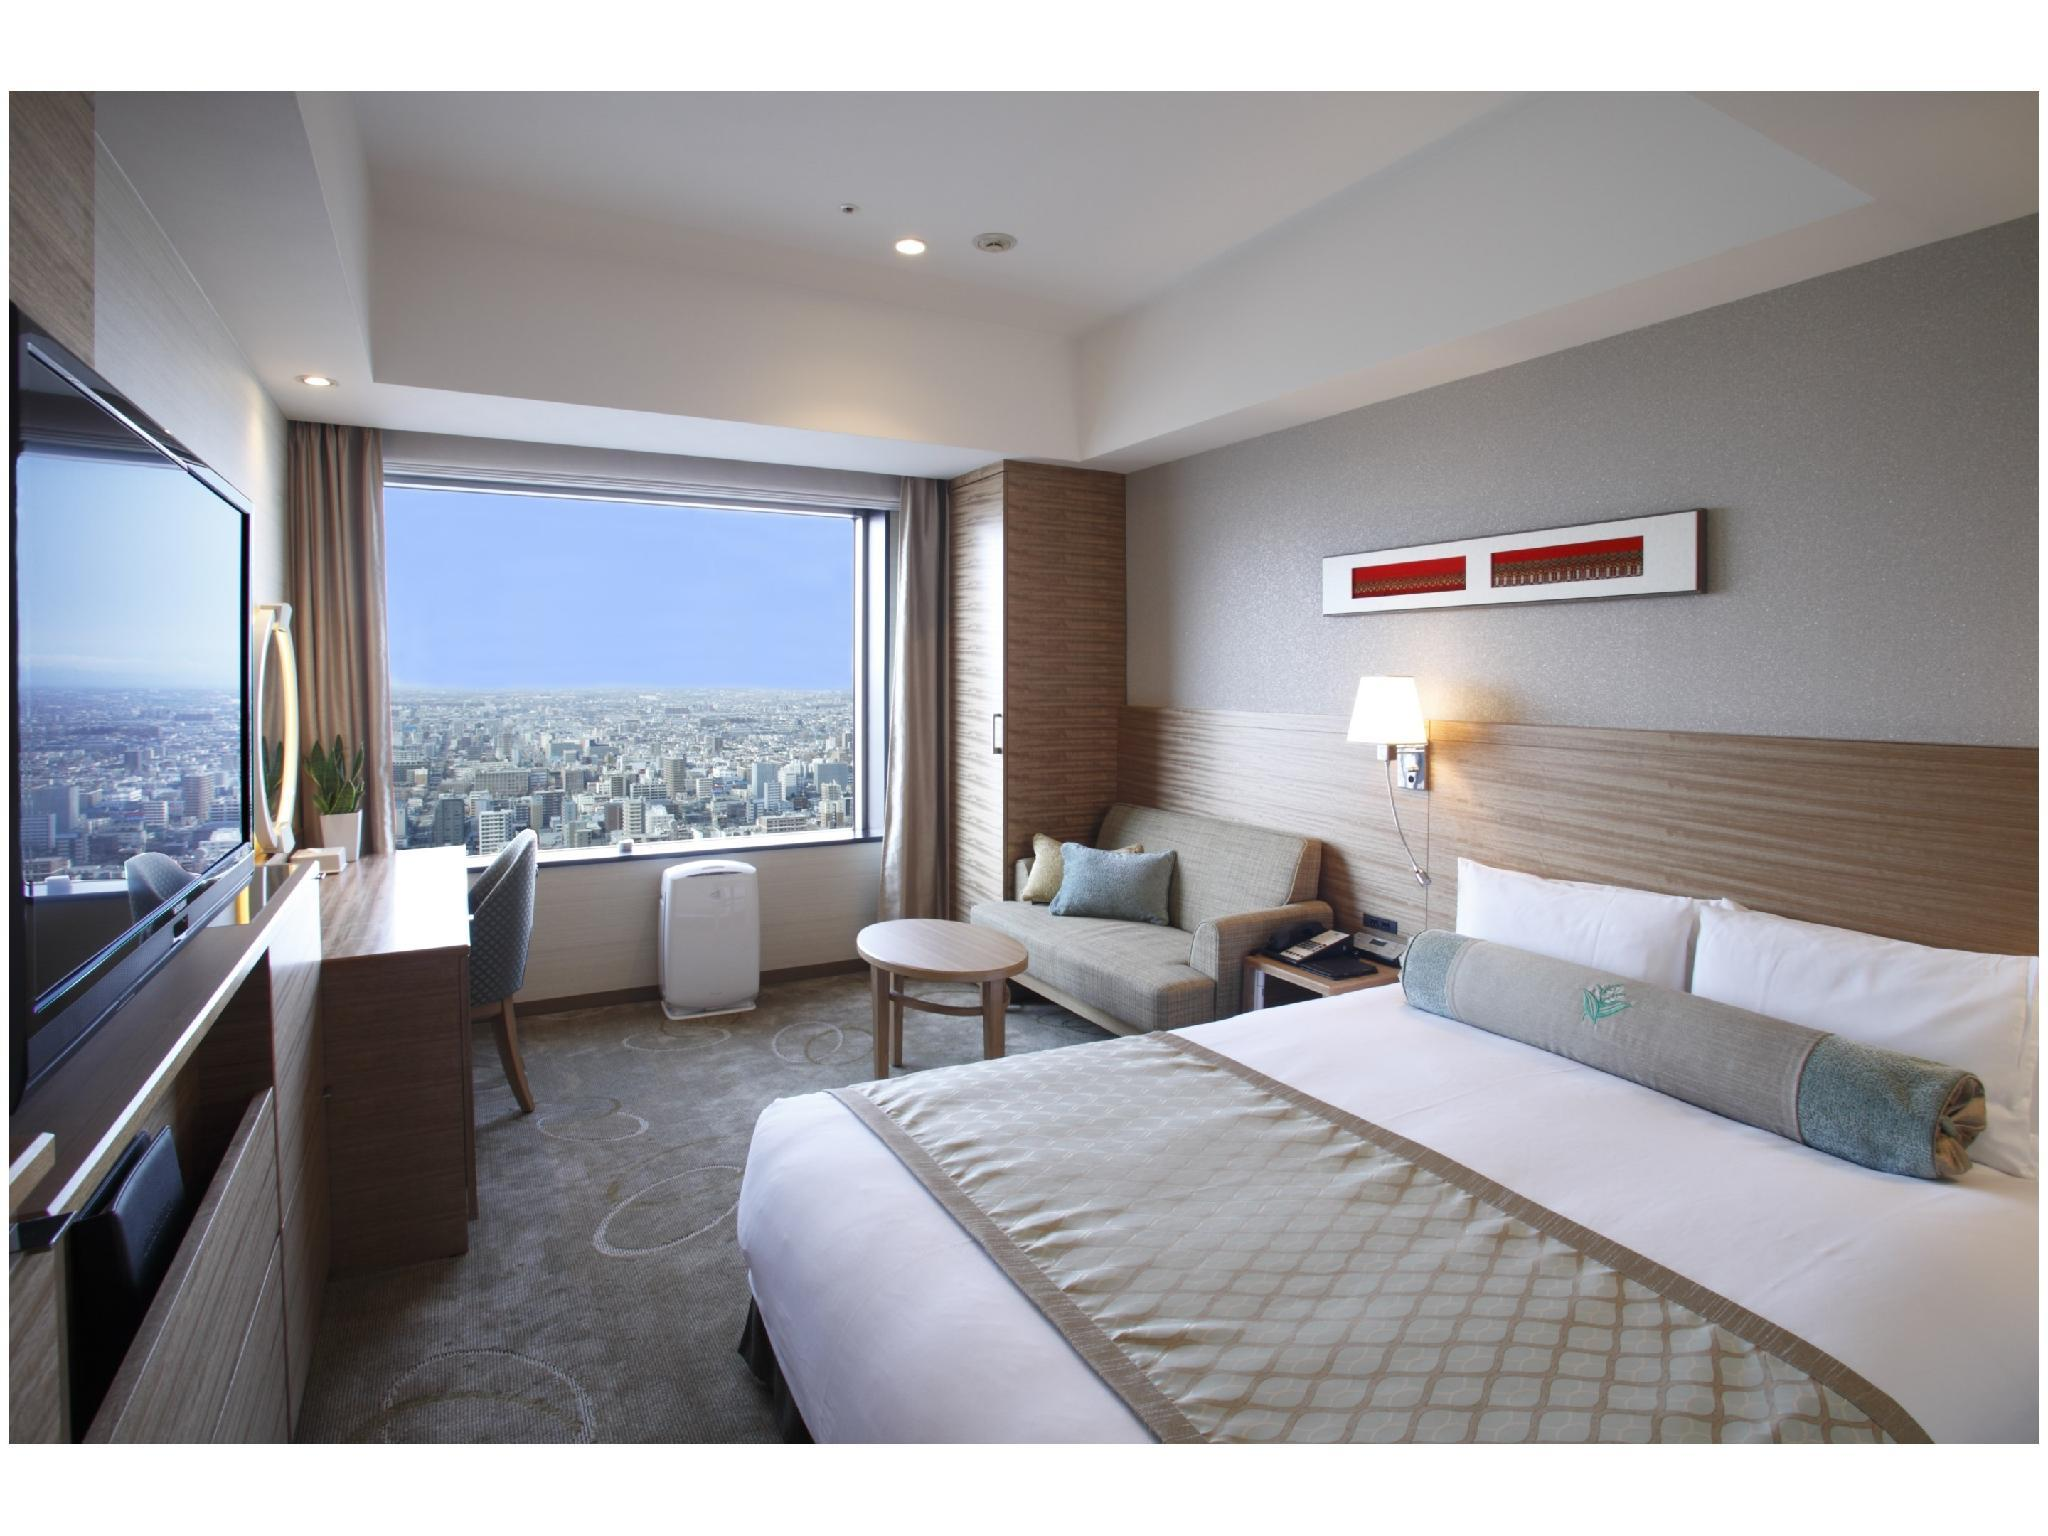 Executive Double Room (Non-smoking) (Executive Double Room - Non-Smoking)